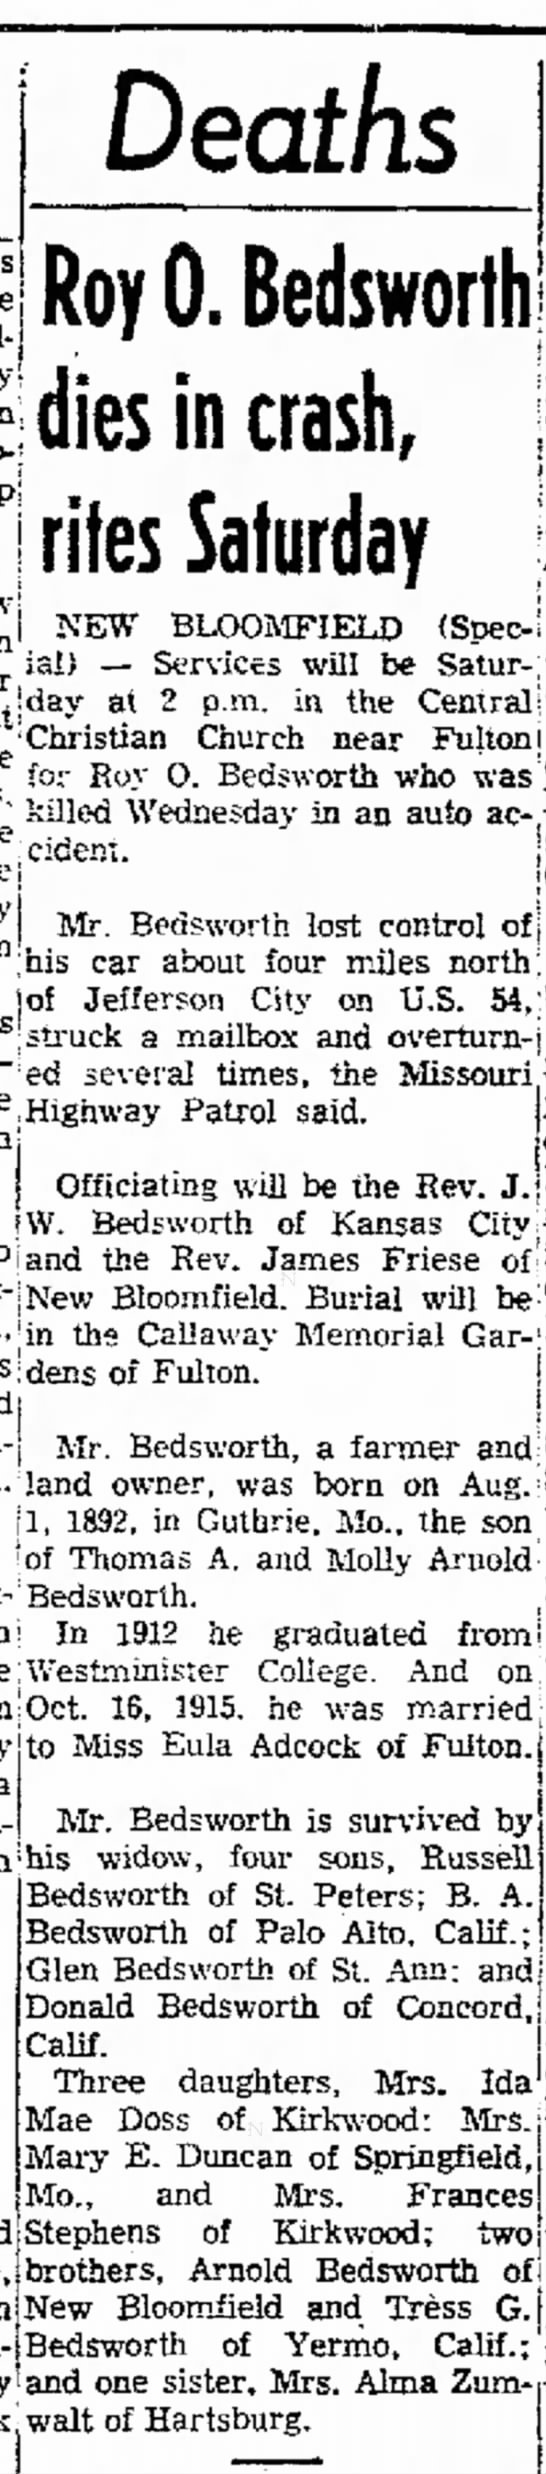 Roy O Bedsworth newspaper obituary - in) Deaths Roy 0. Bedsworth dies in crash,...